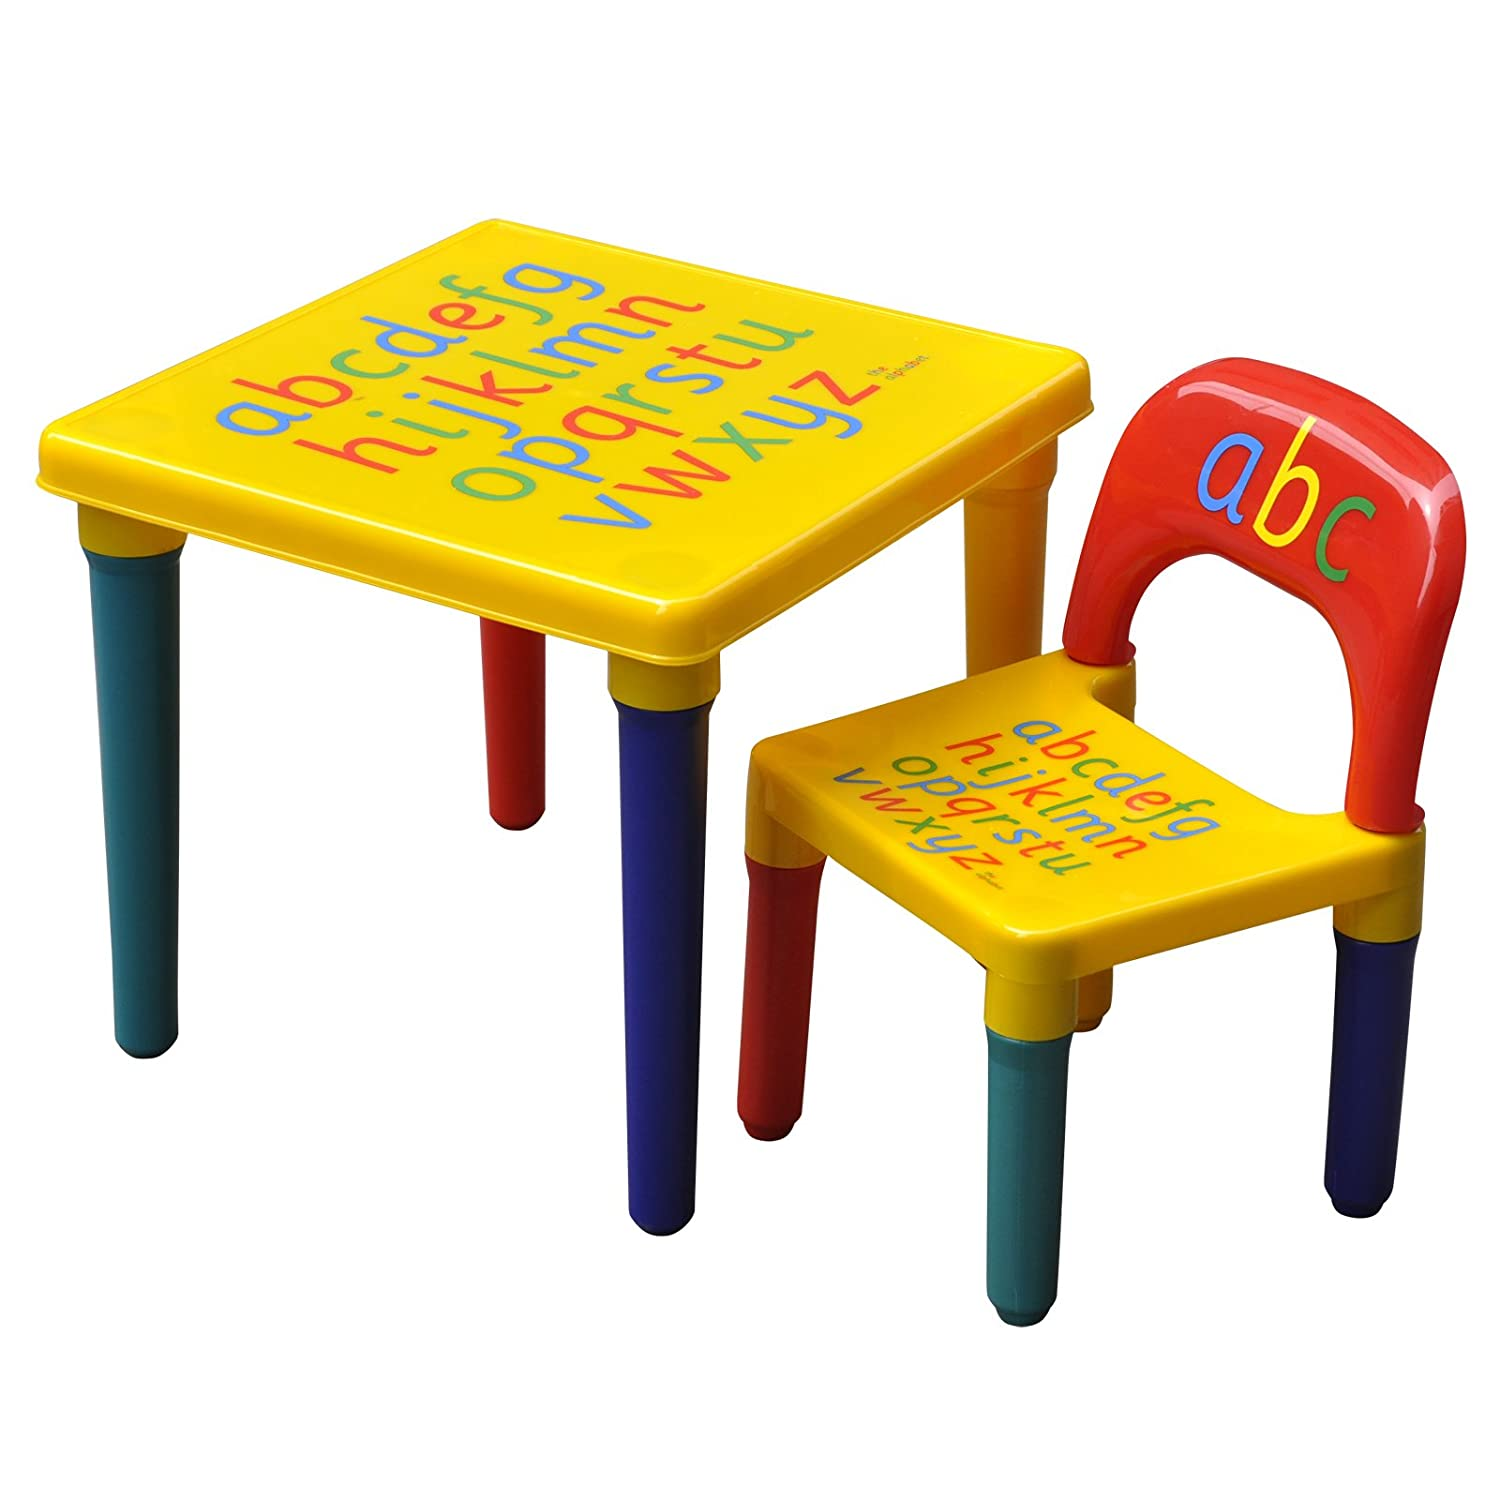 Kids Children Furniture Table and Chair Set Alphabet Design